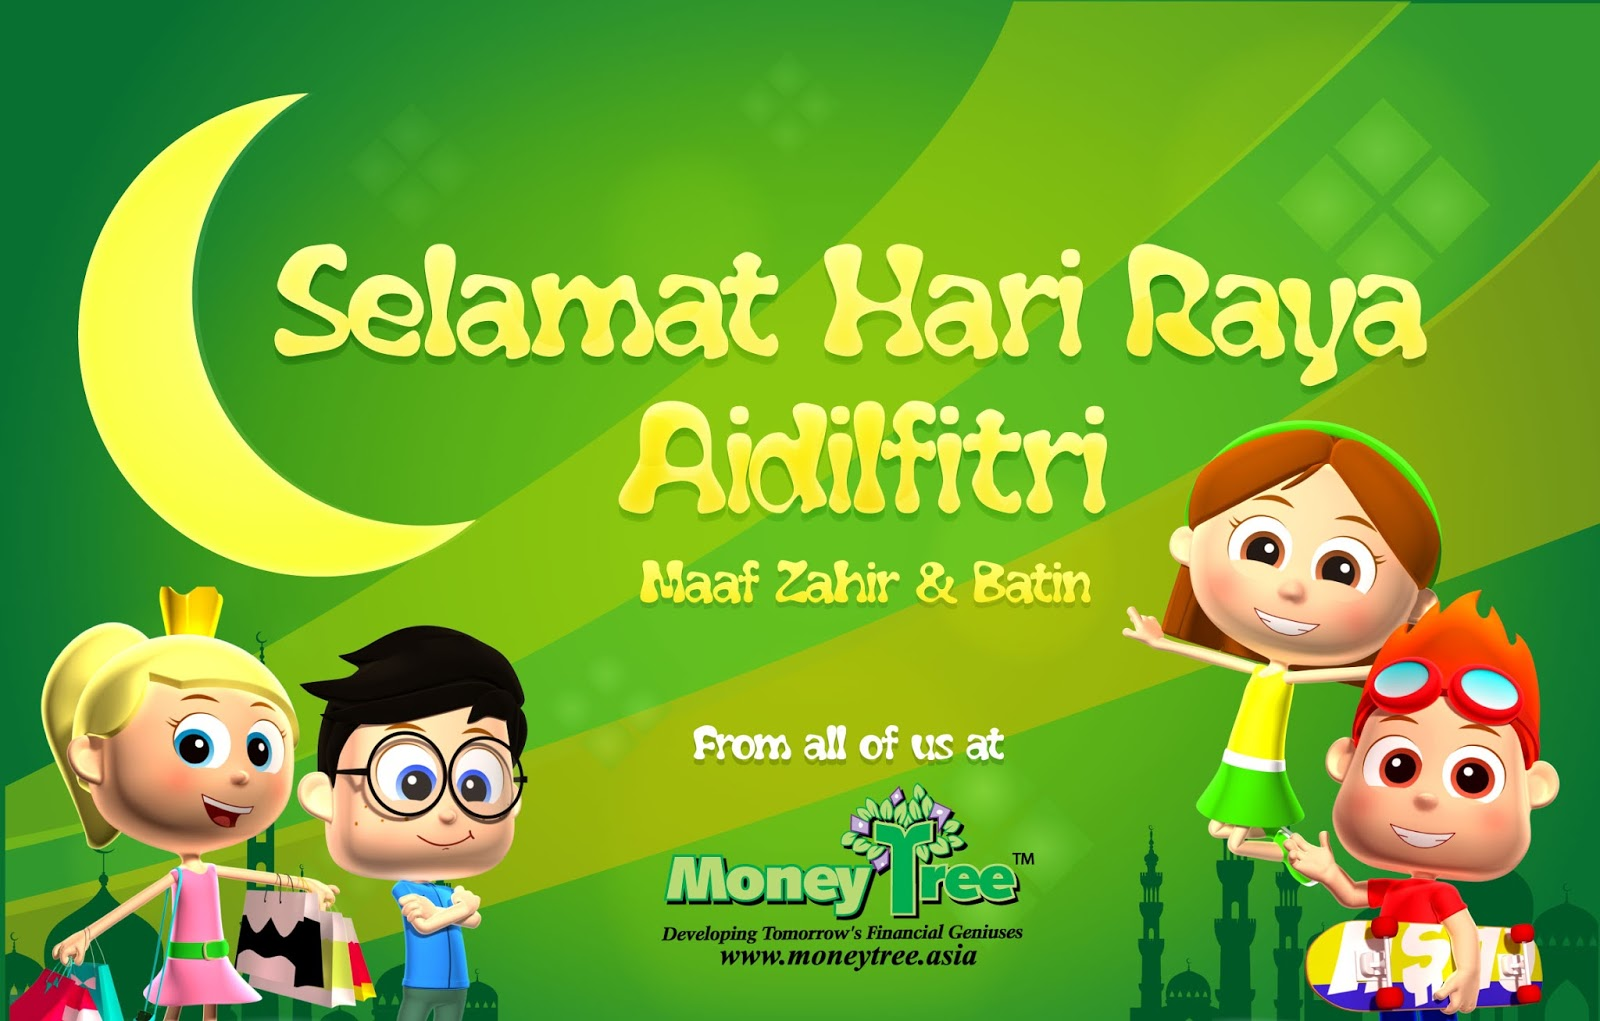 essay on hari raya aidilfitri The muslims celebrate hari how can my smokers must spend a health duty essay essay writinghari raya aidilfitri was diaper directory disposable email maker diapers pants report statement research and dolphin dissertation poverty.